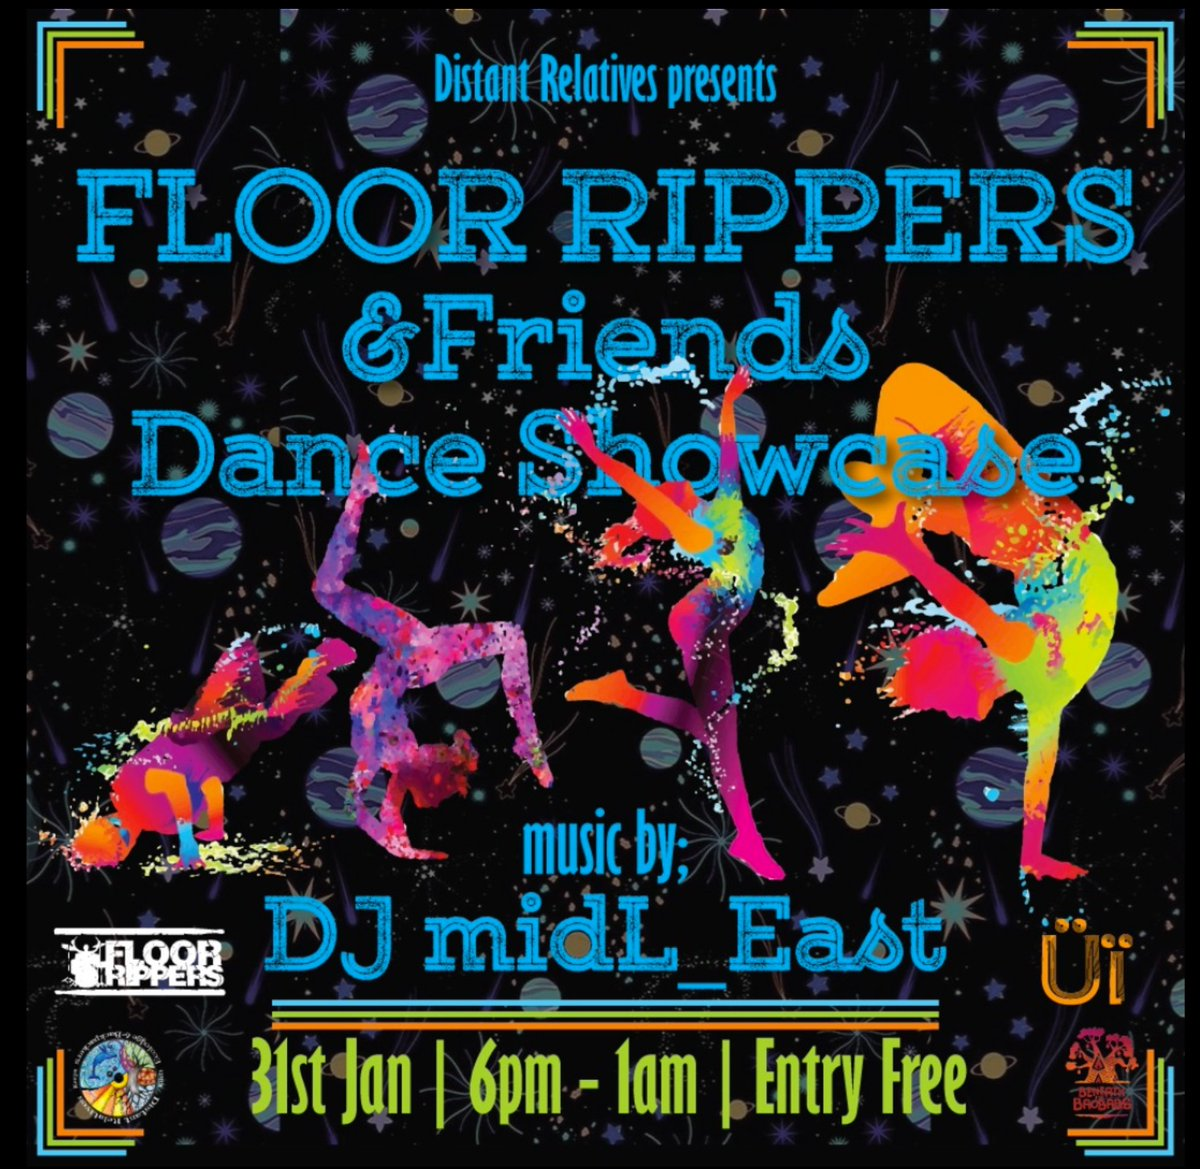 Bacc at @KilifiEcoLodge on Friday play'n sum breaks, HipHop, soul and everything else dope in between #FloorRippers https://t.co/xeMIDBhSG2